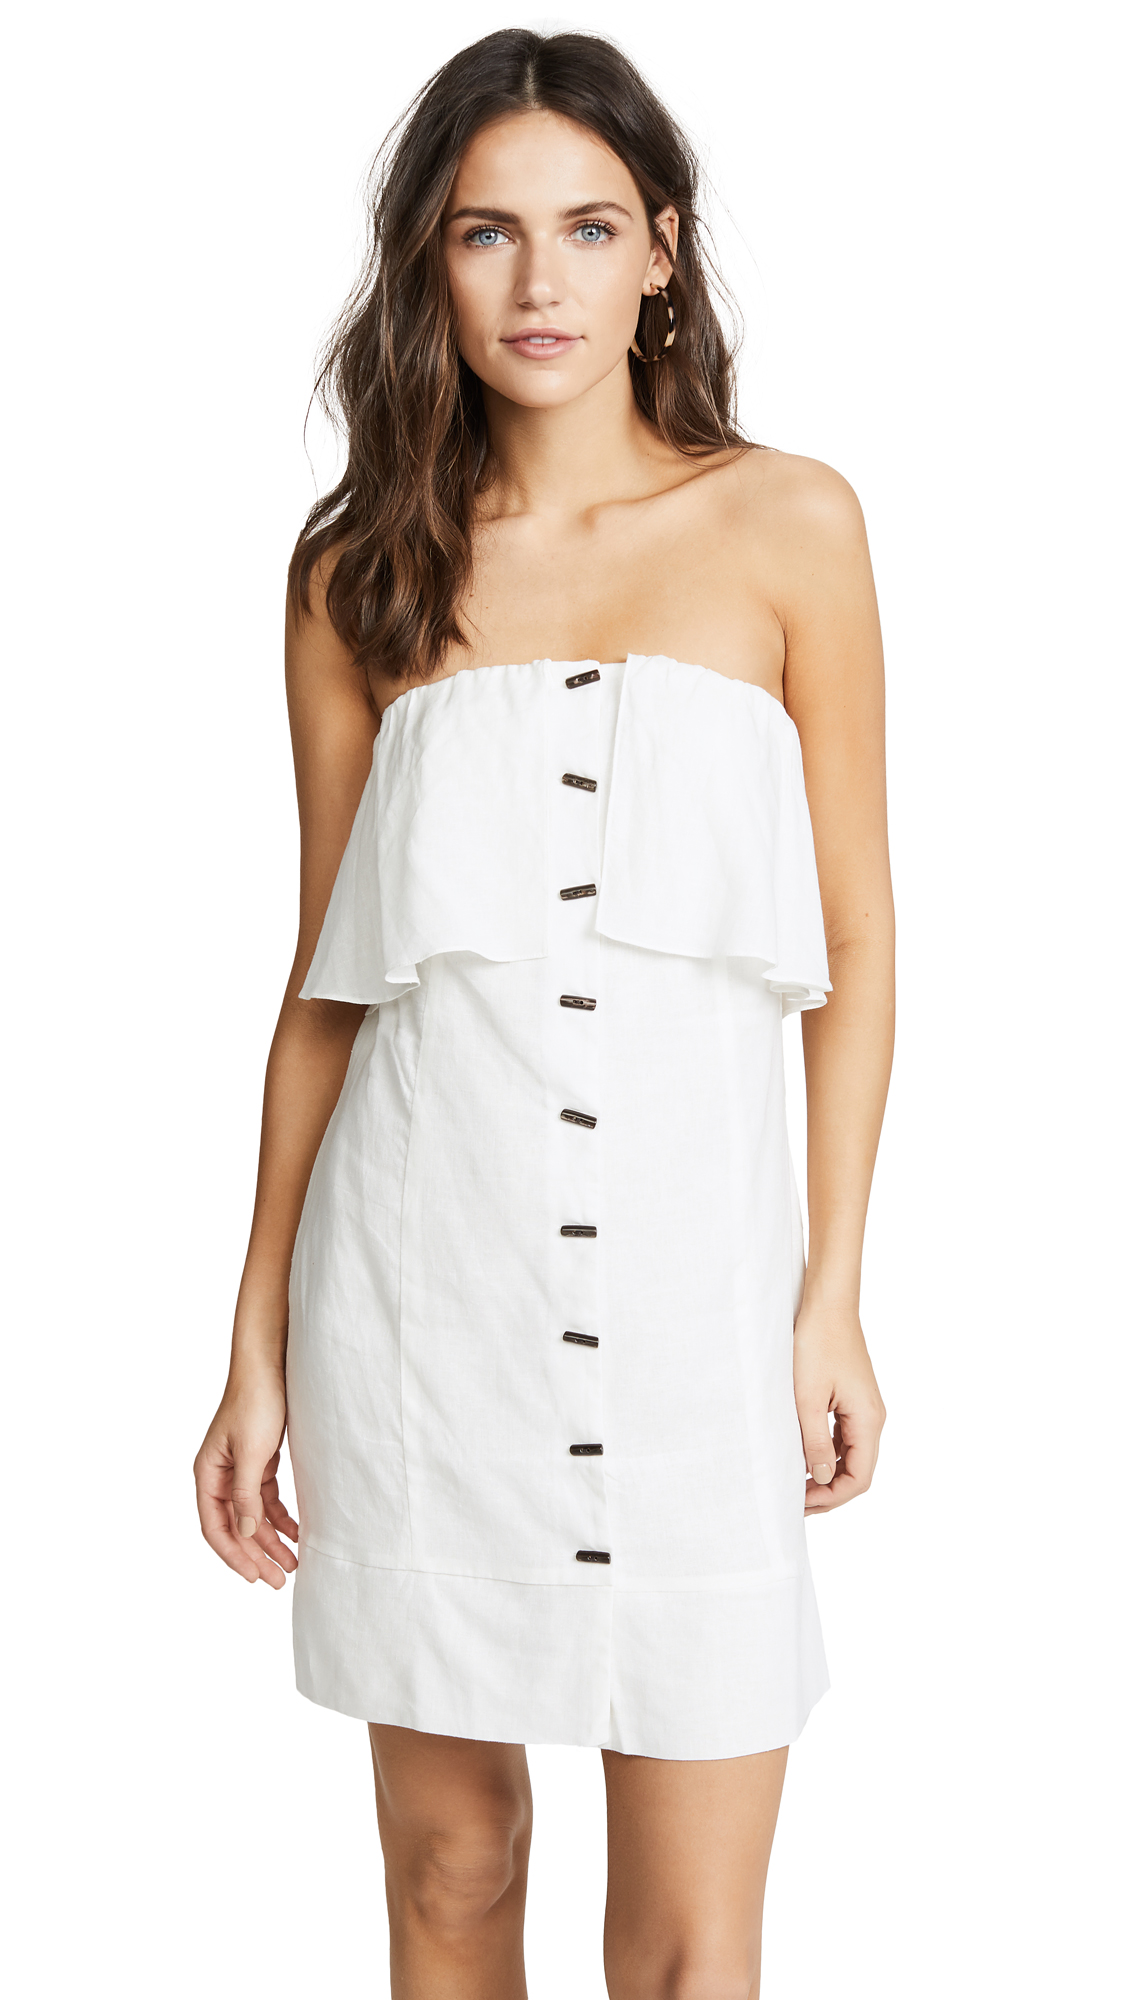 ViX Swimwear Off White Strapless Button Dress